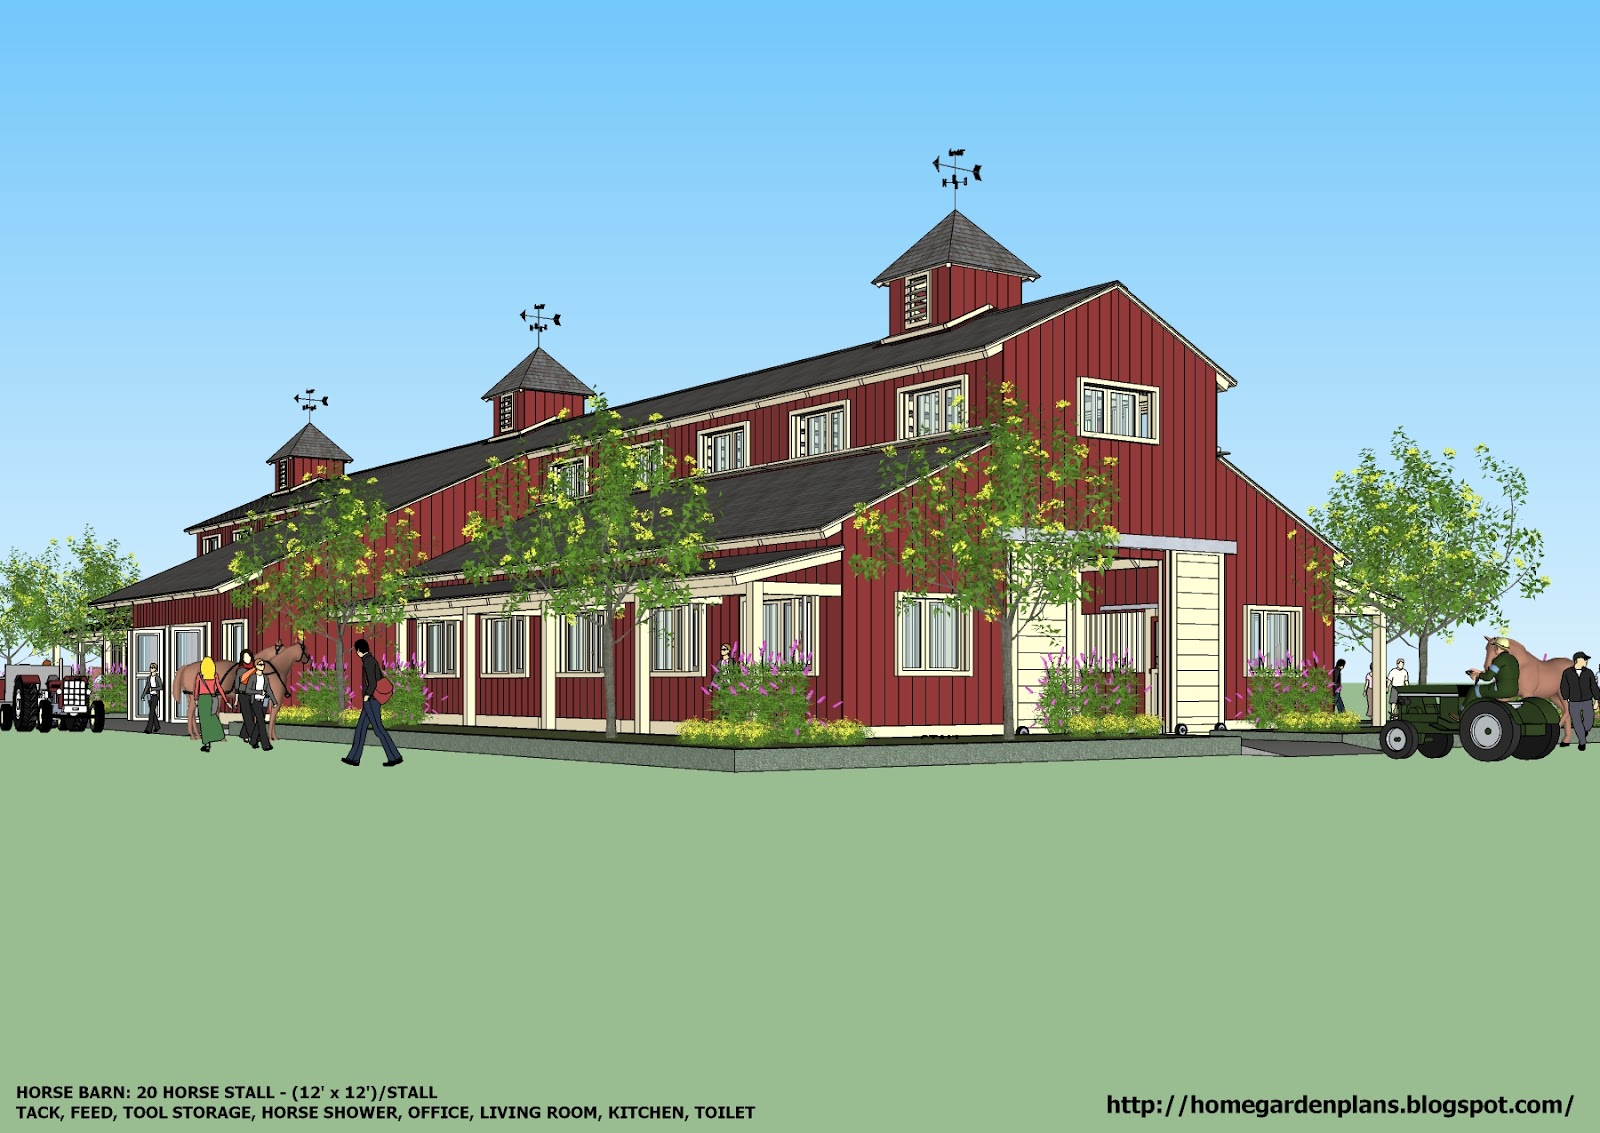 Home garden plans b20h large horse barn for 20 horse for Barn designs for horses